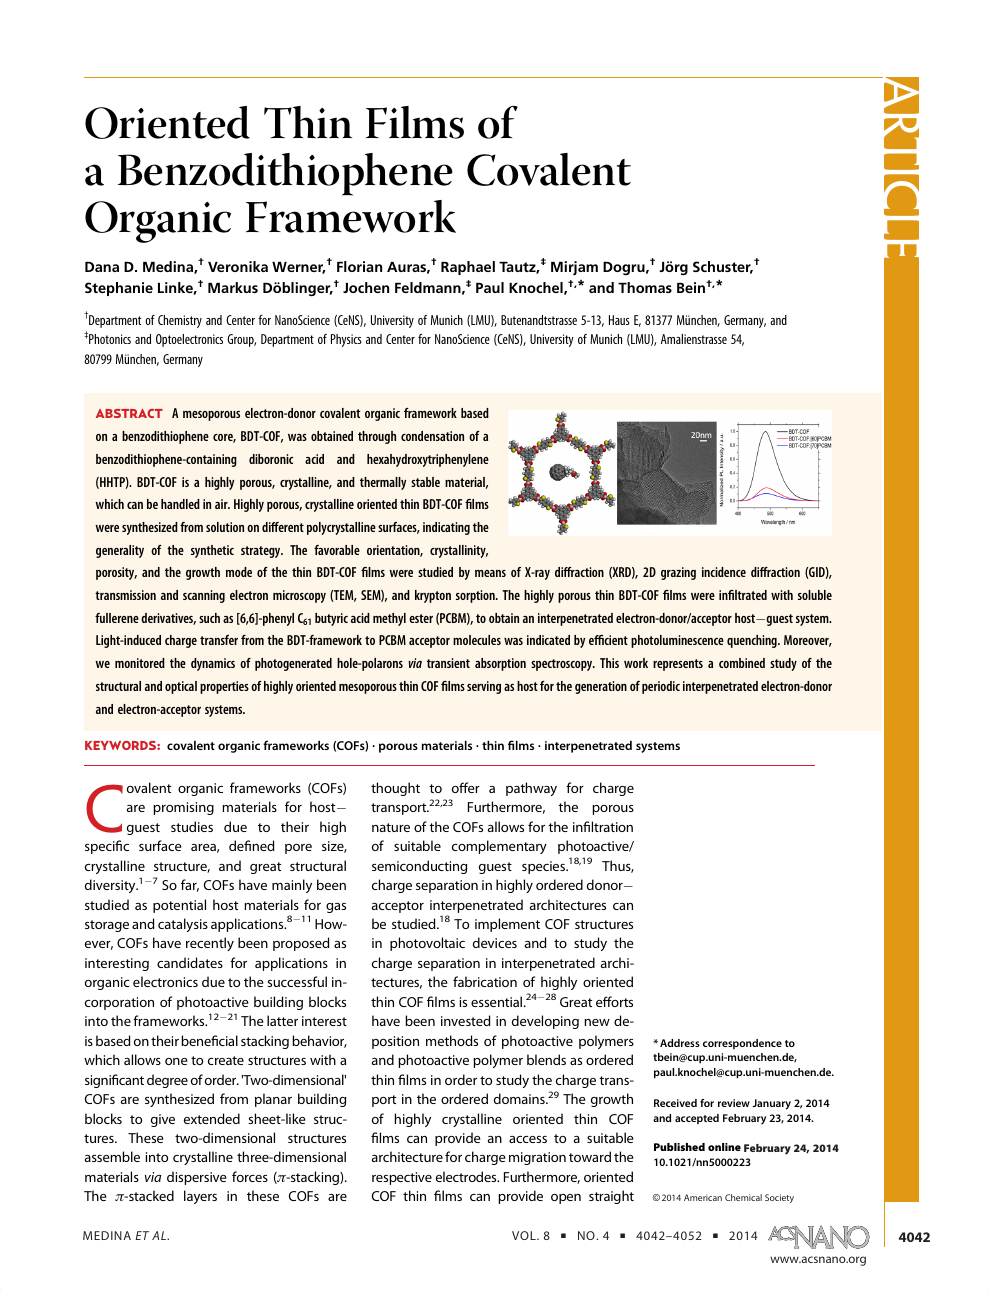 Oriented Thin Films Of A Benzodithiophene Covalent Organic Framework Topic Of Research Paper In Nano Technology Download Scholarly Article Pdf And Read For Free On Cyberleninka Open Science Hub